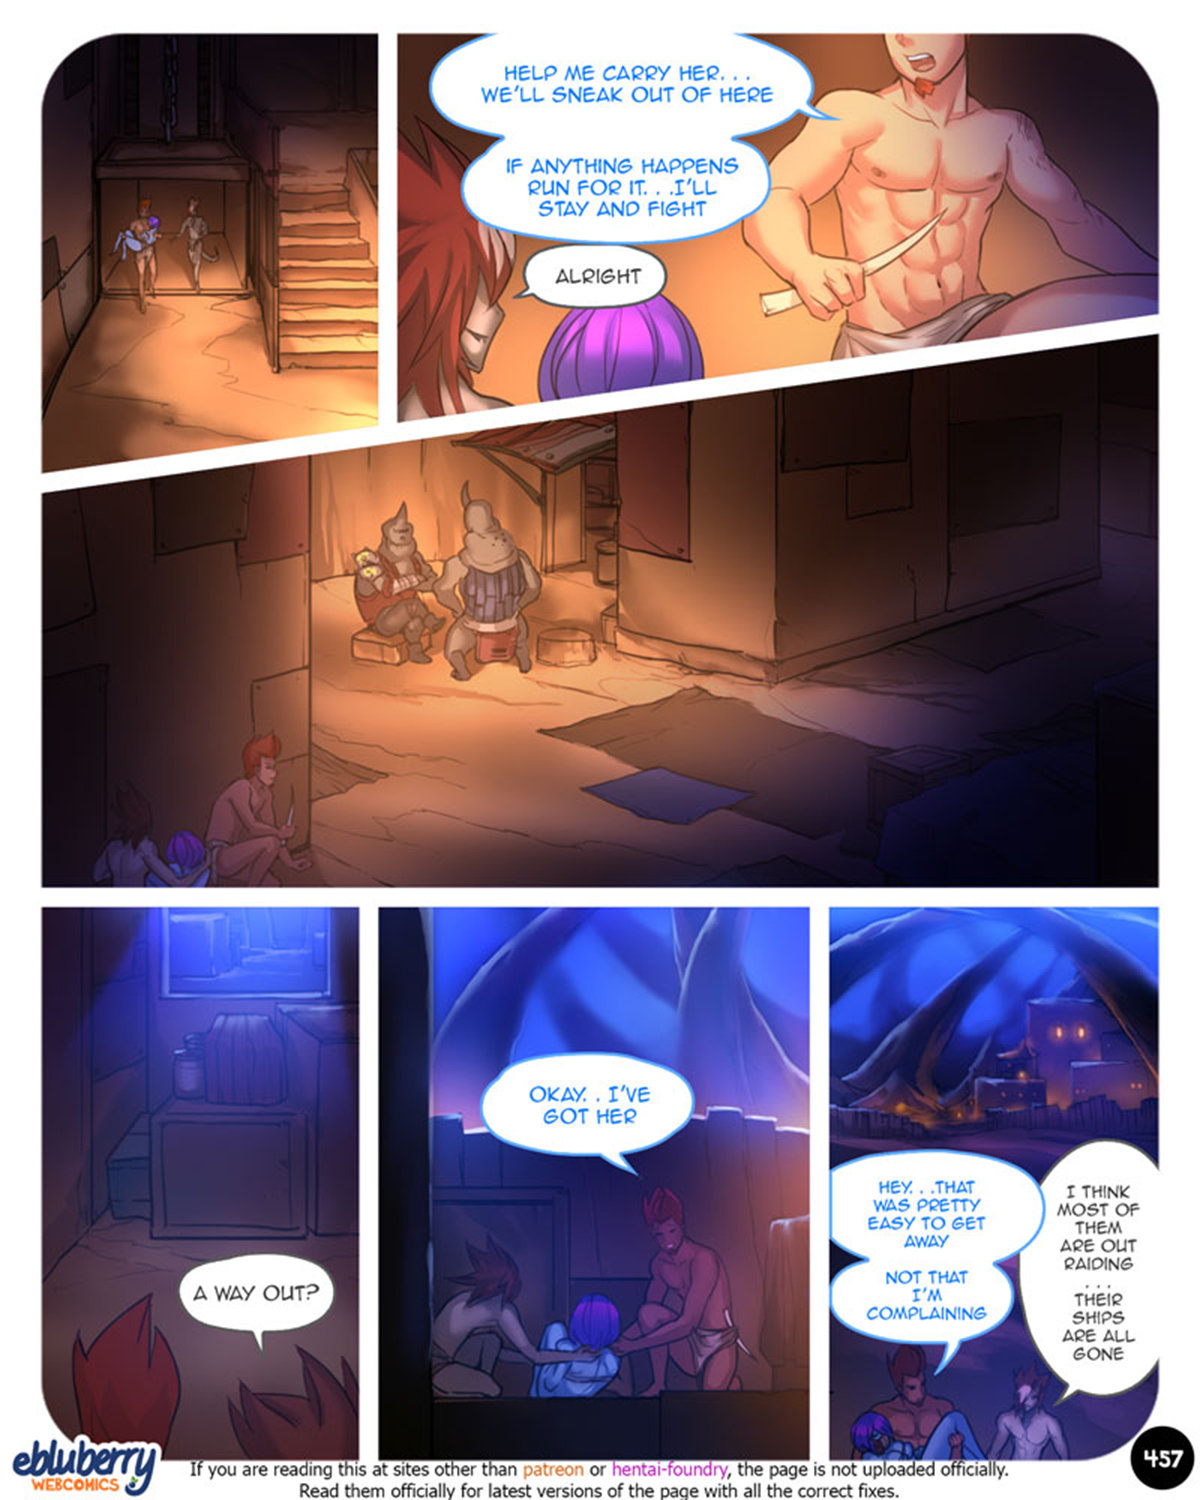 018 2 - S.EXpedition - [Ebluberry]. Part 22.